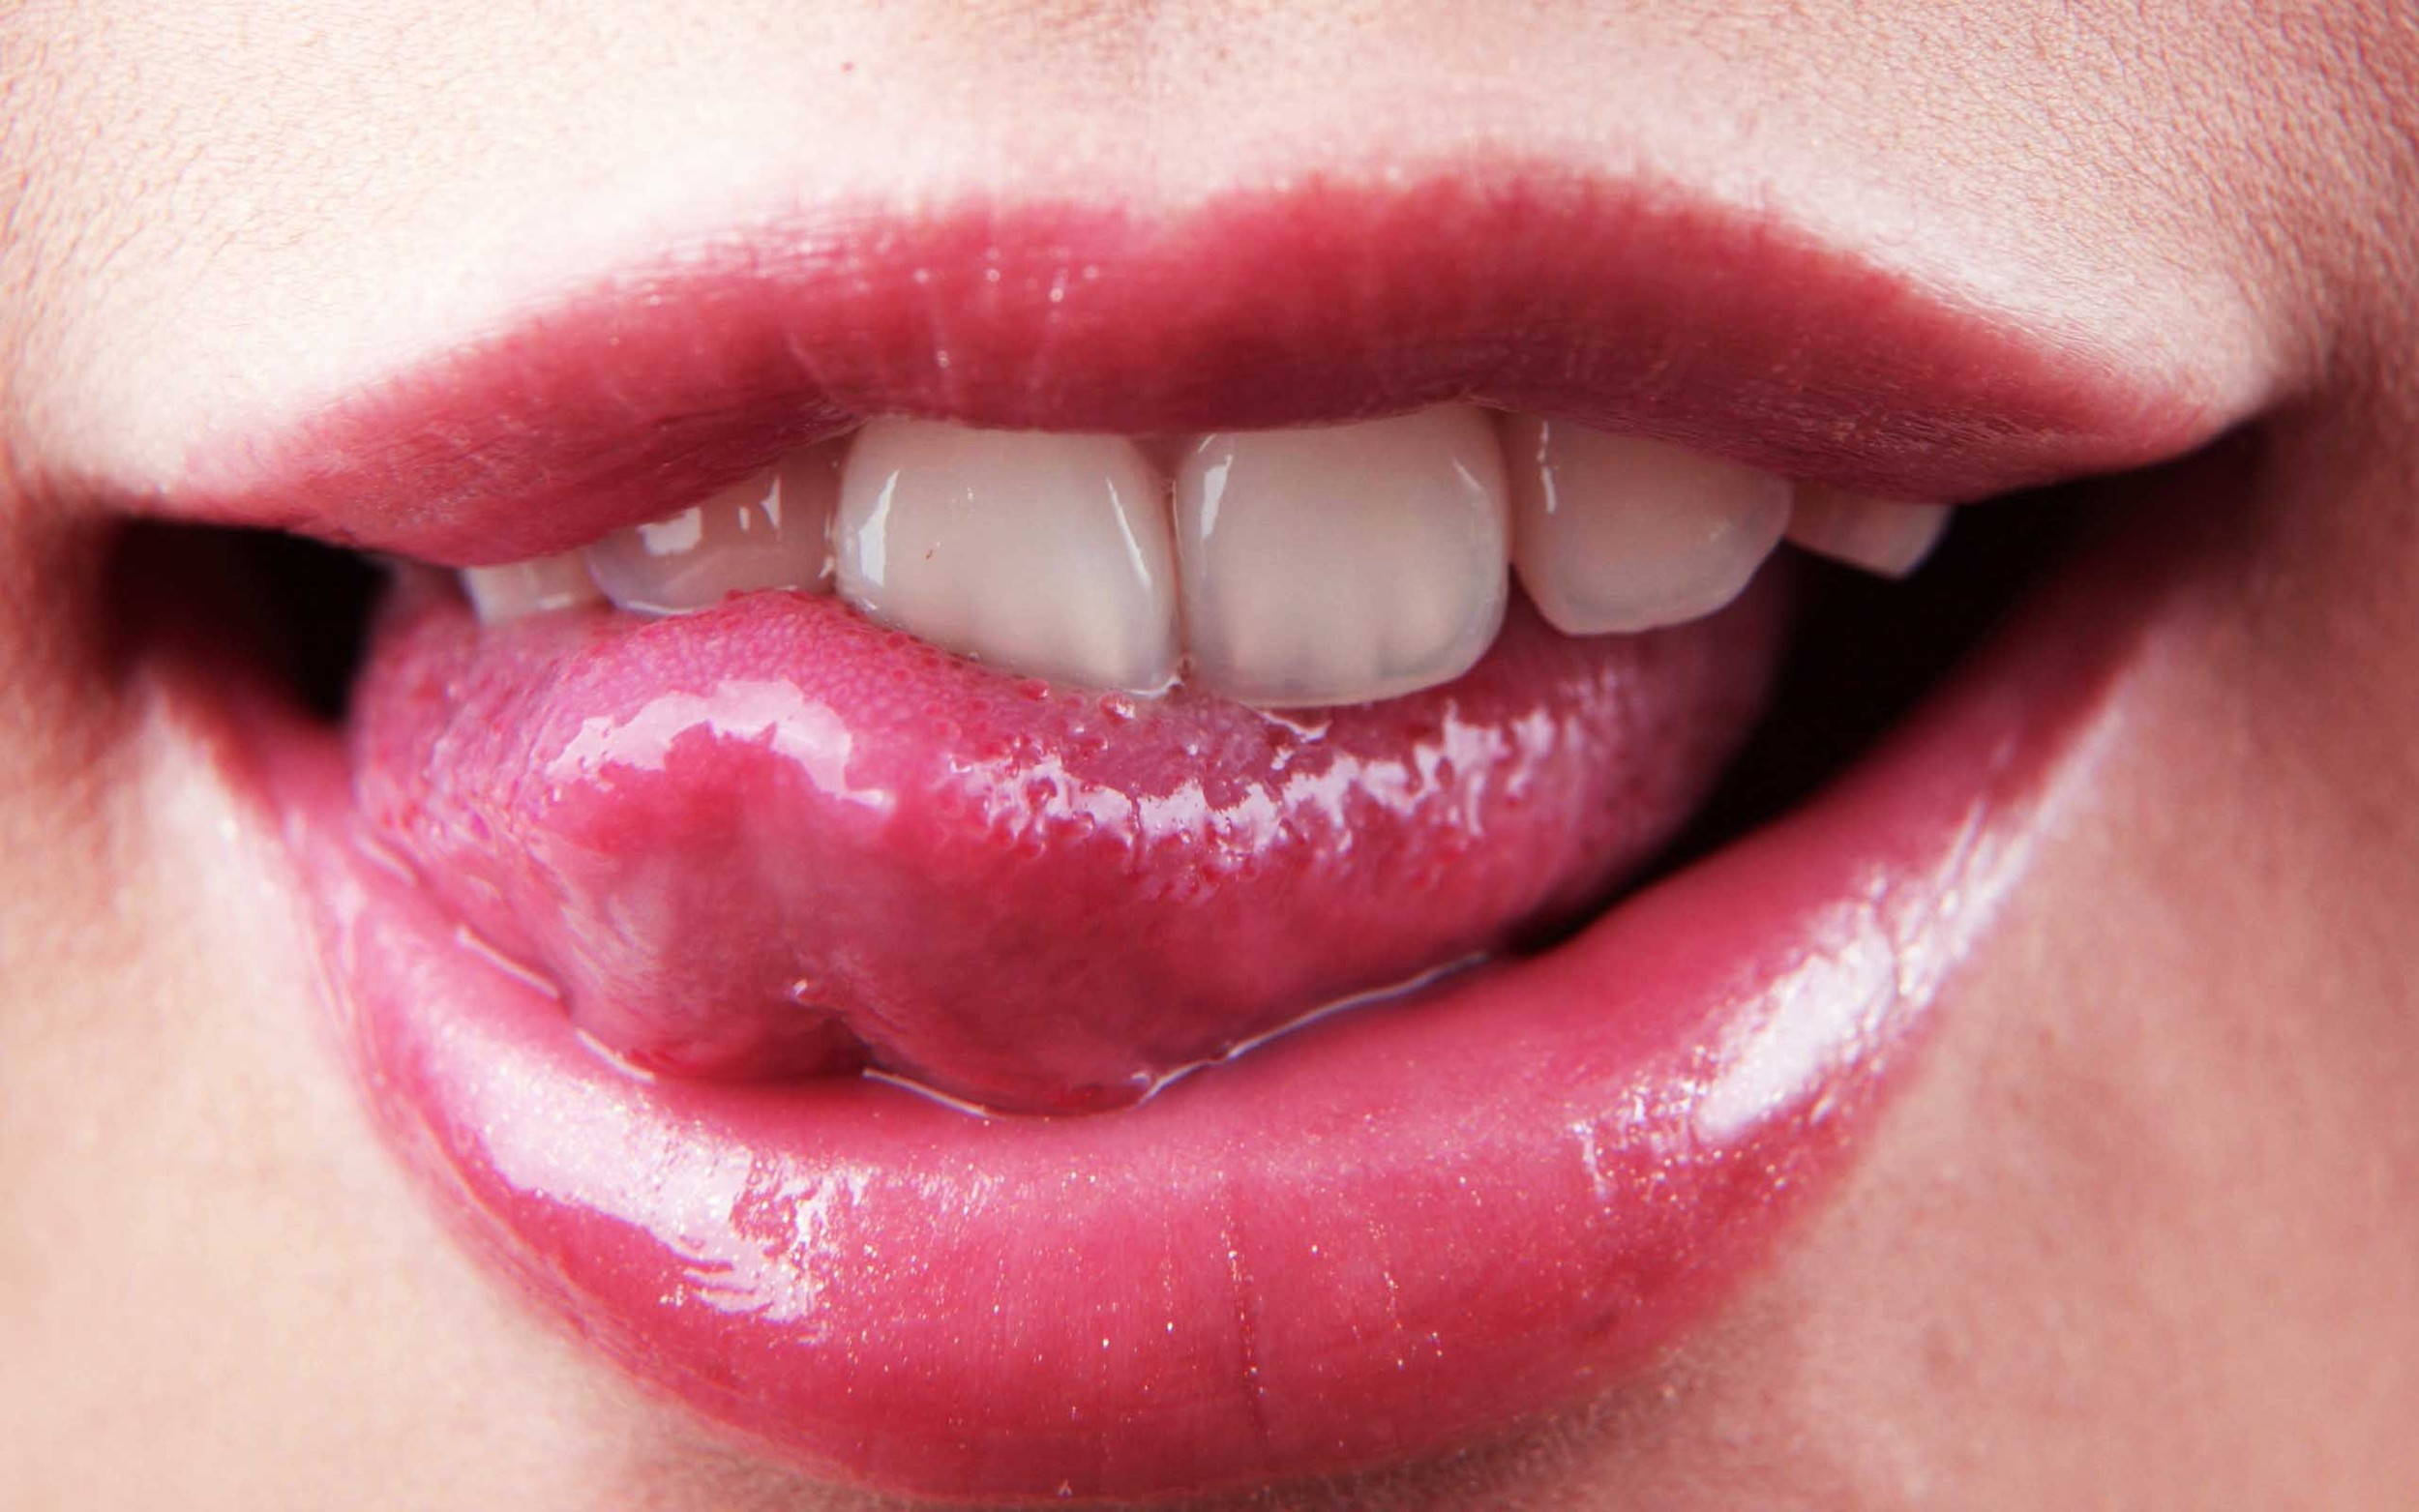 lips-tongue-873928-2560x1600.jpg